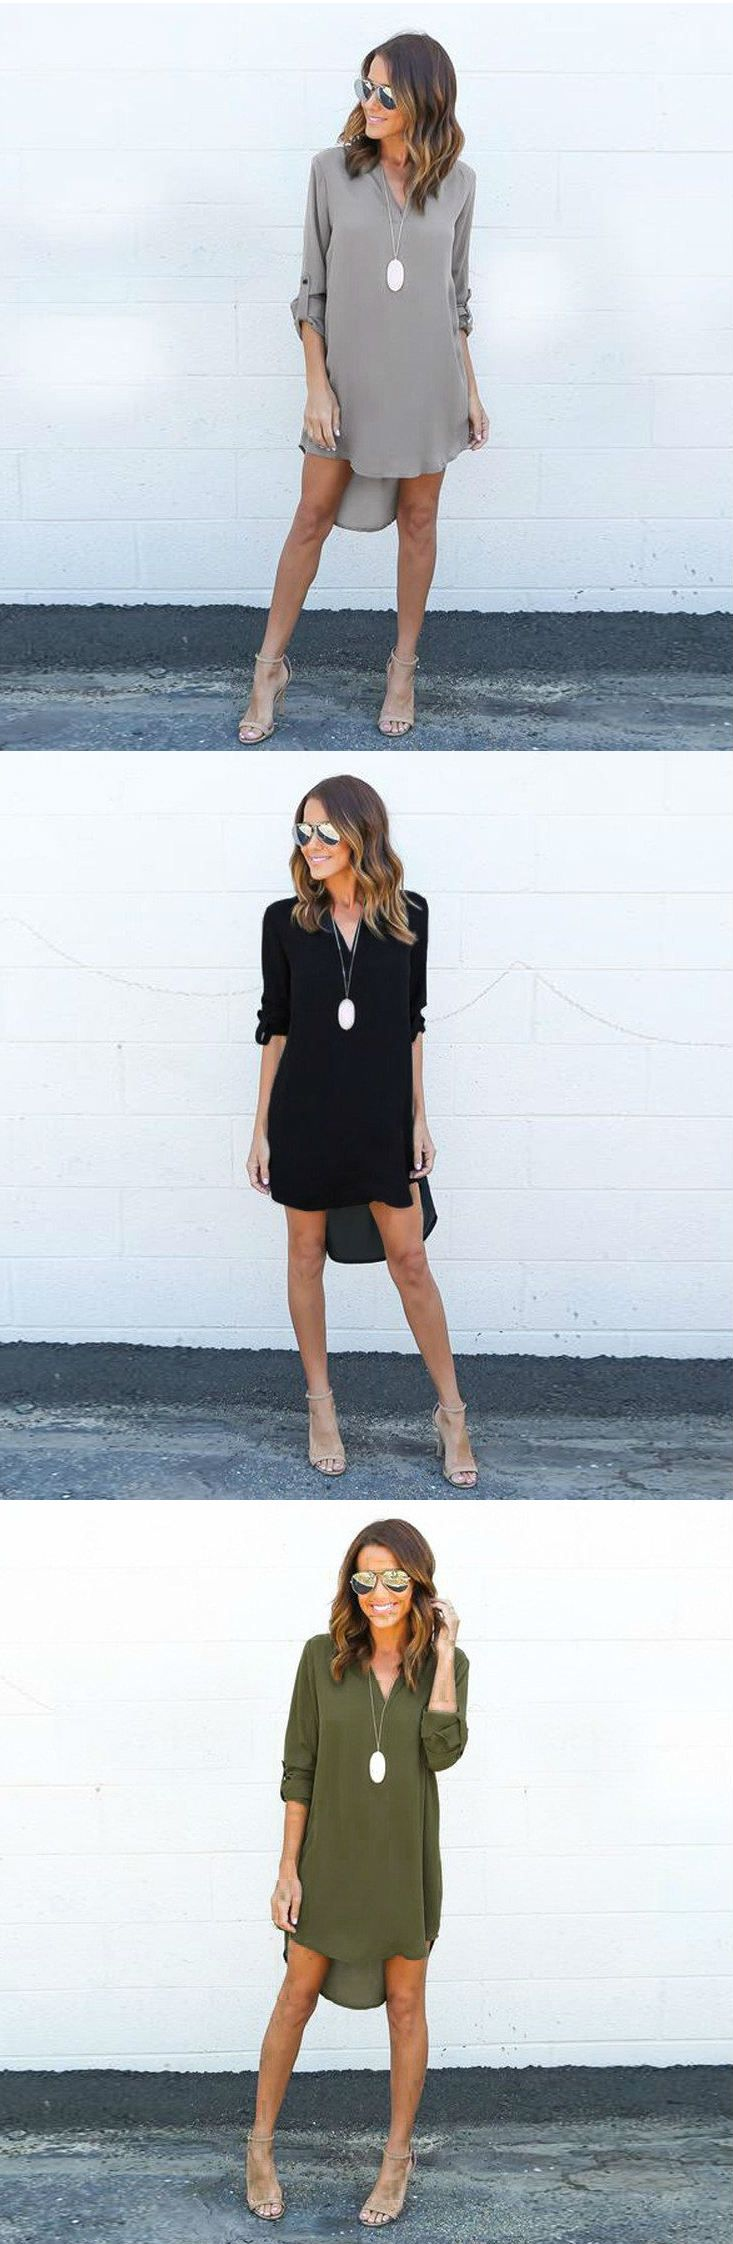 $23.99 Long Sleeves Mini Plain Dress